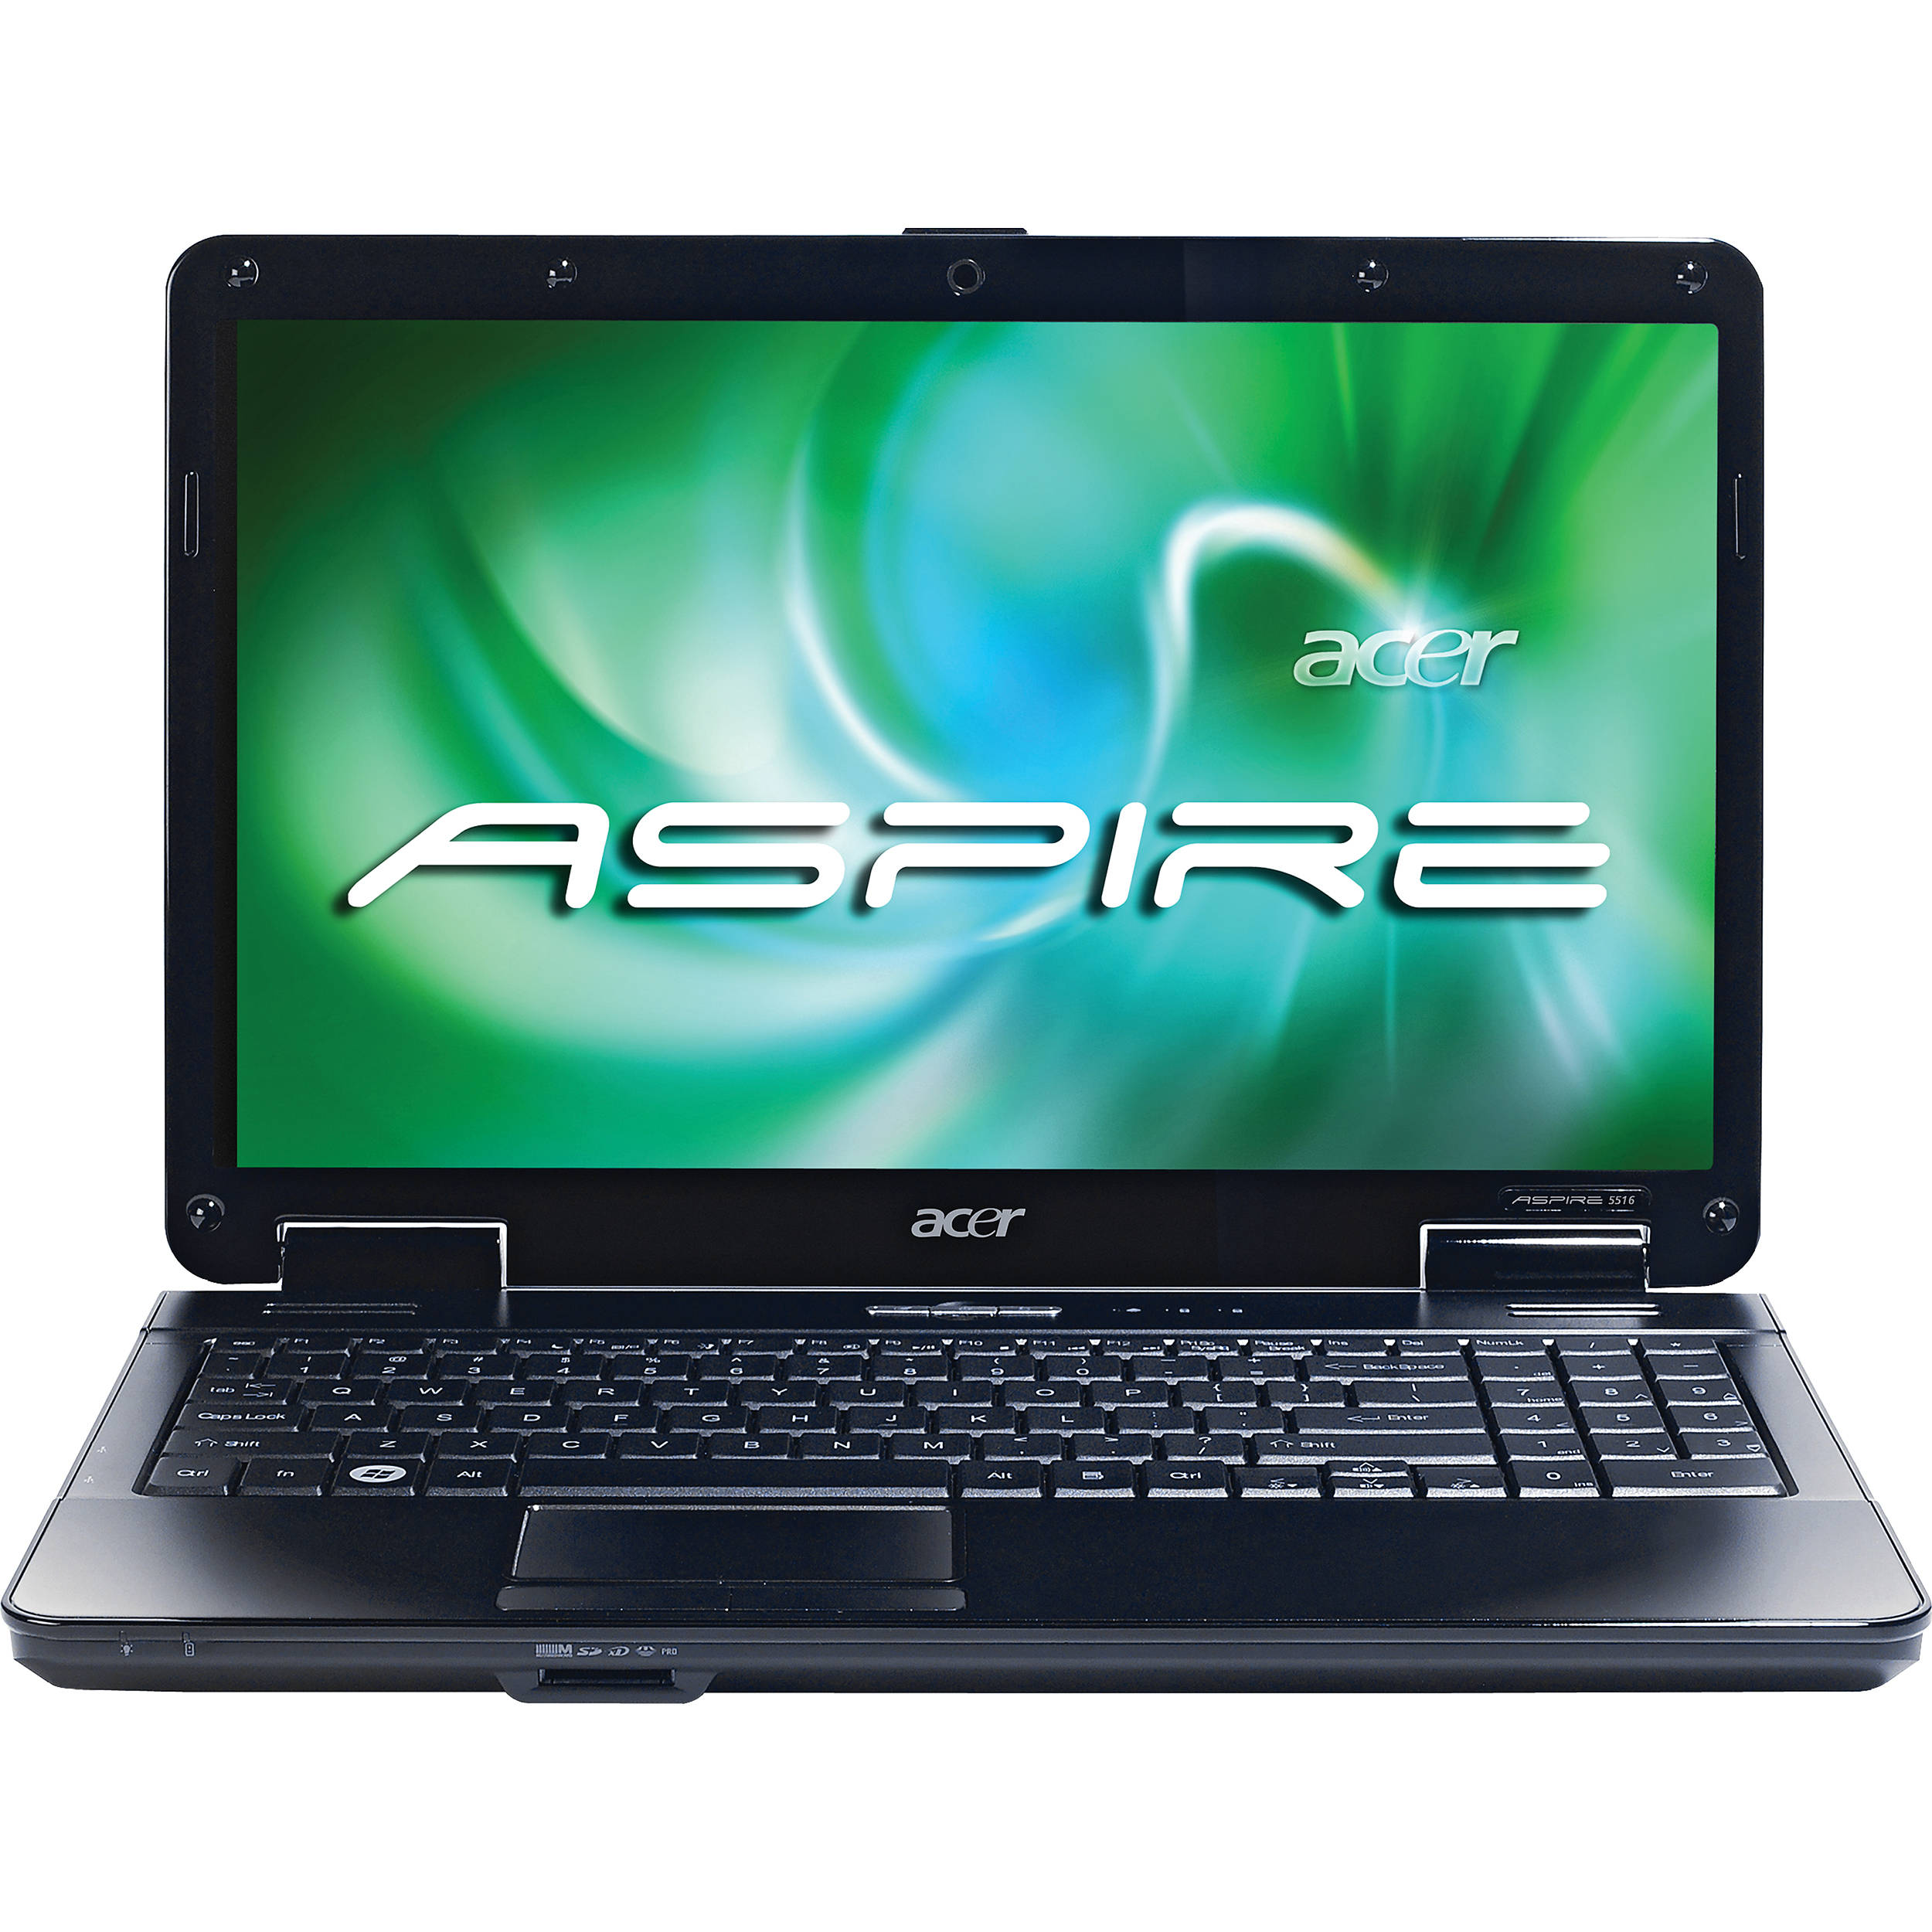 Acer Aspire 5516 Notebook ATI VGA Drivers PC